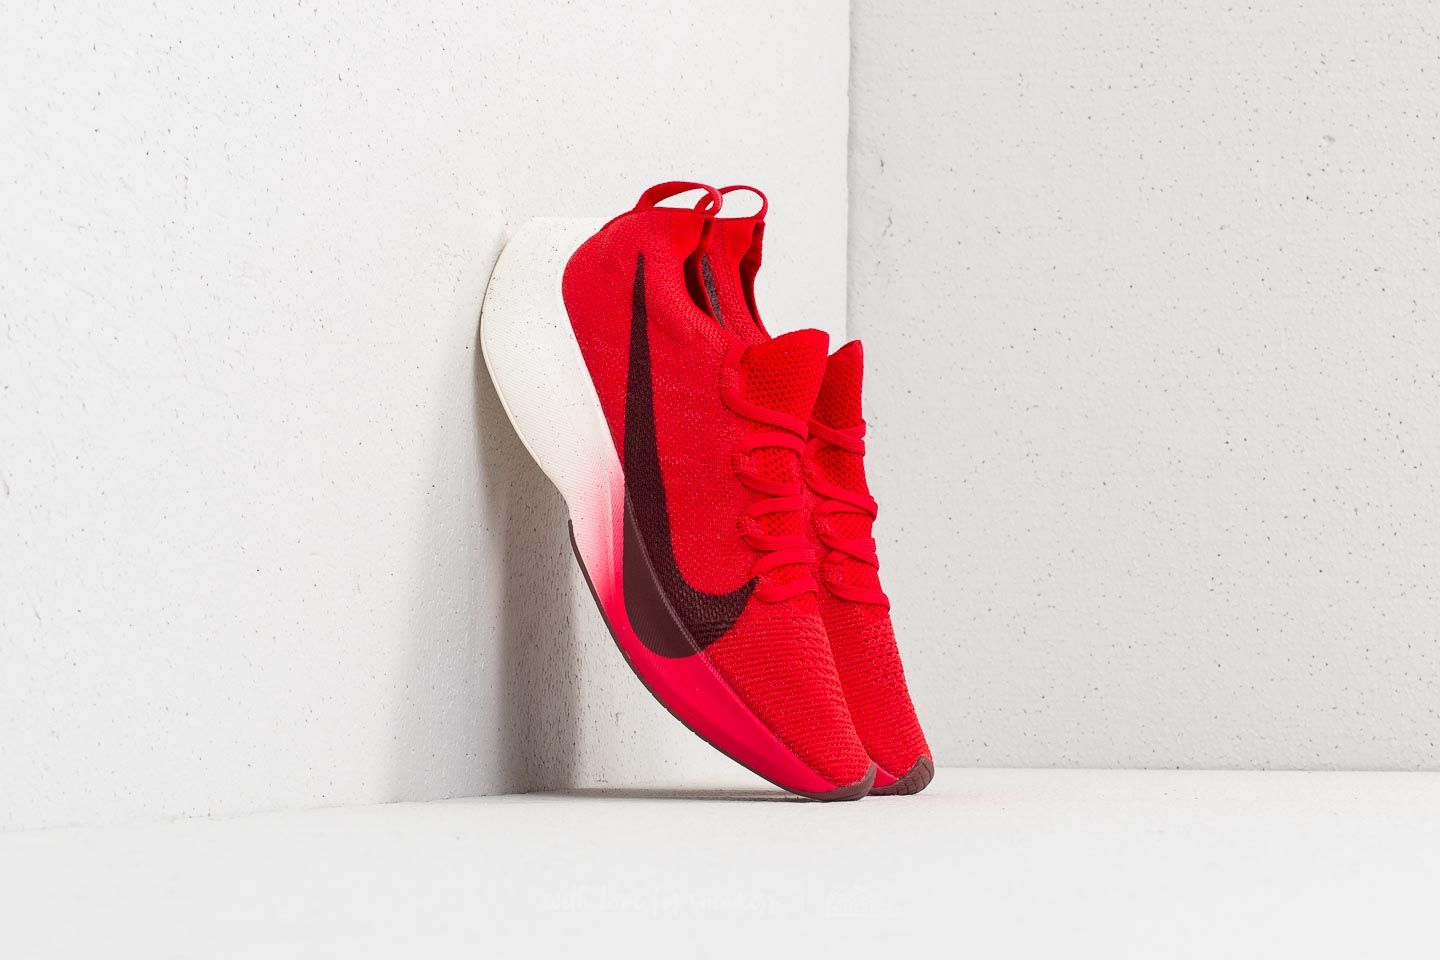 d0edede43abe Nike React Vapor Street Flyknit University Red  Dark Team Red